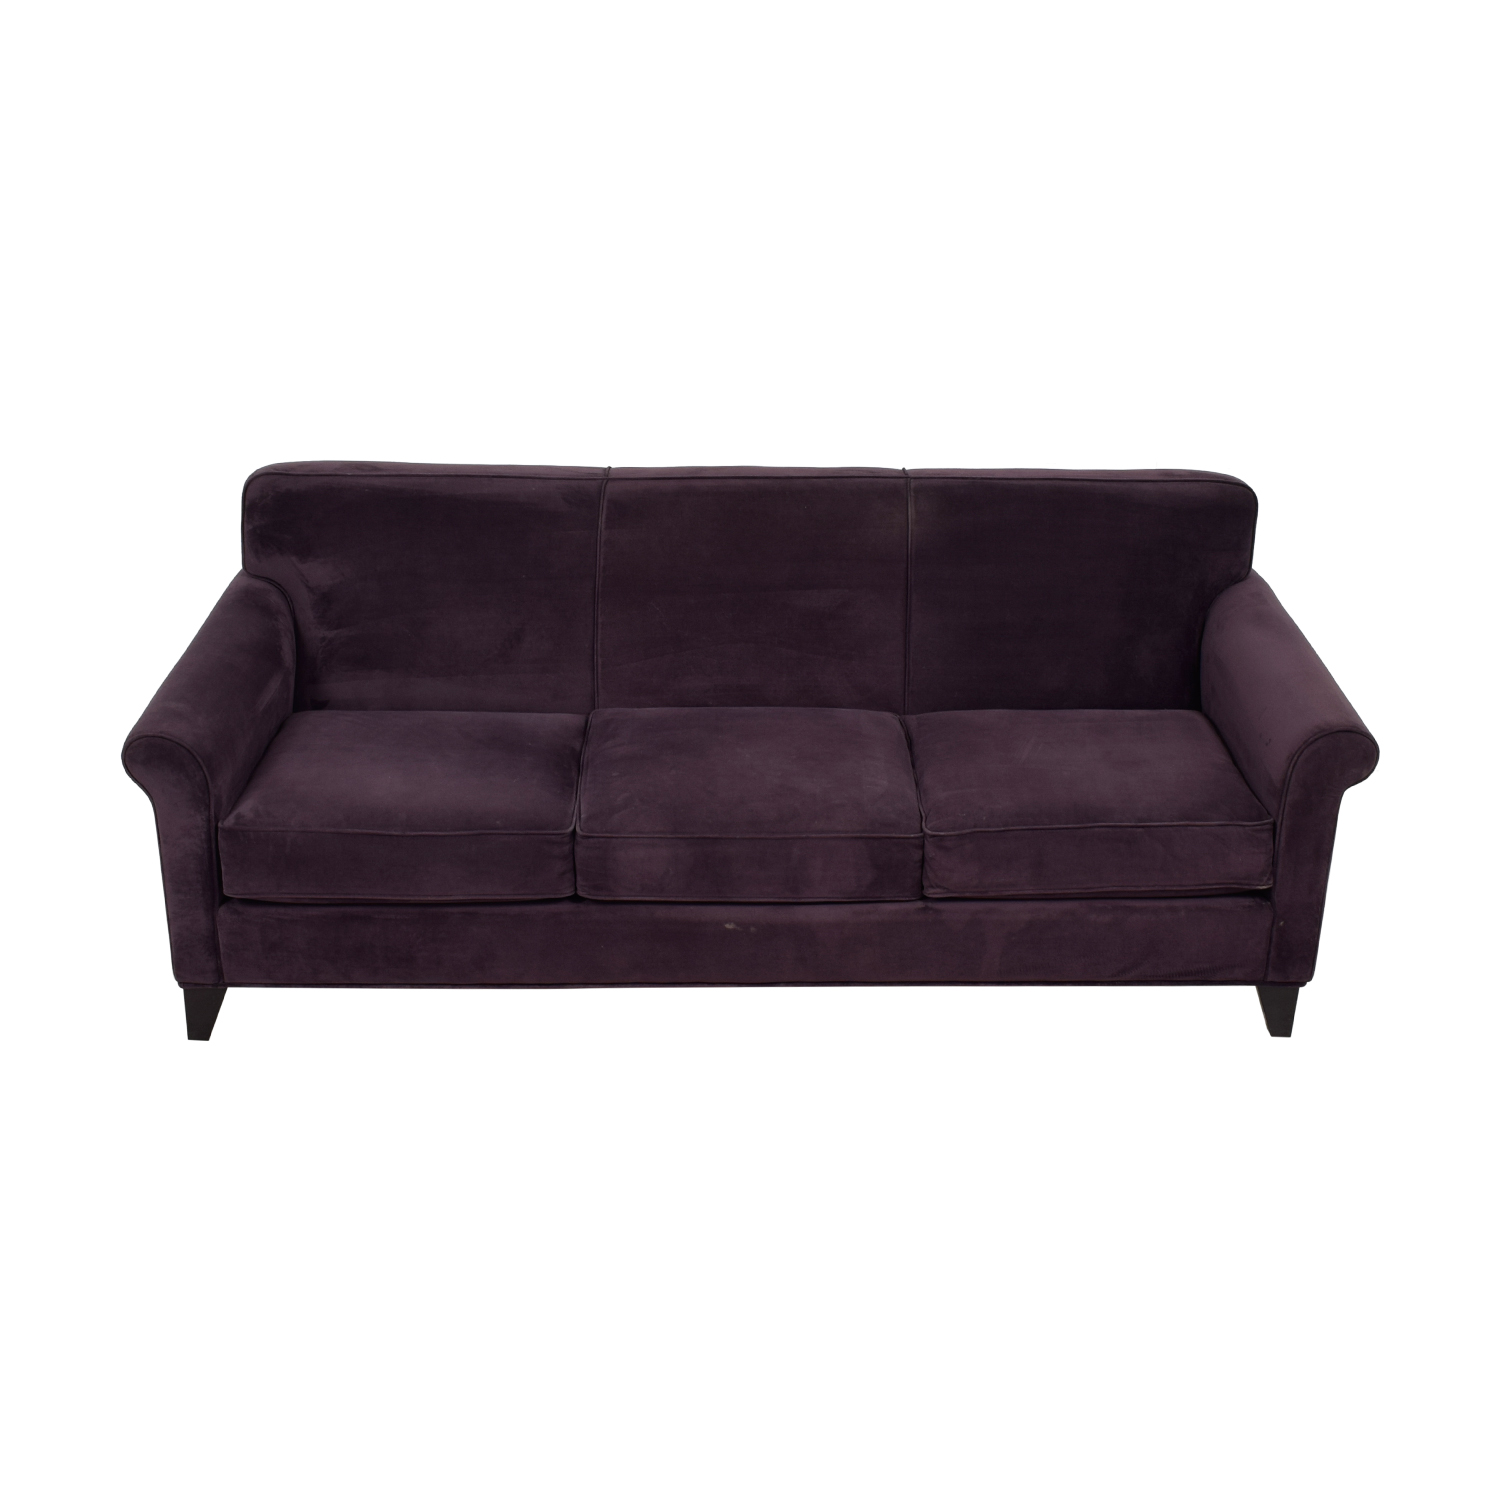 Raymour & Flanigan Raymour & Flanigan Purple Three-Cushion Couch discount